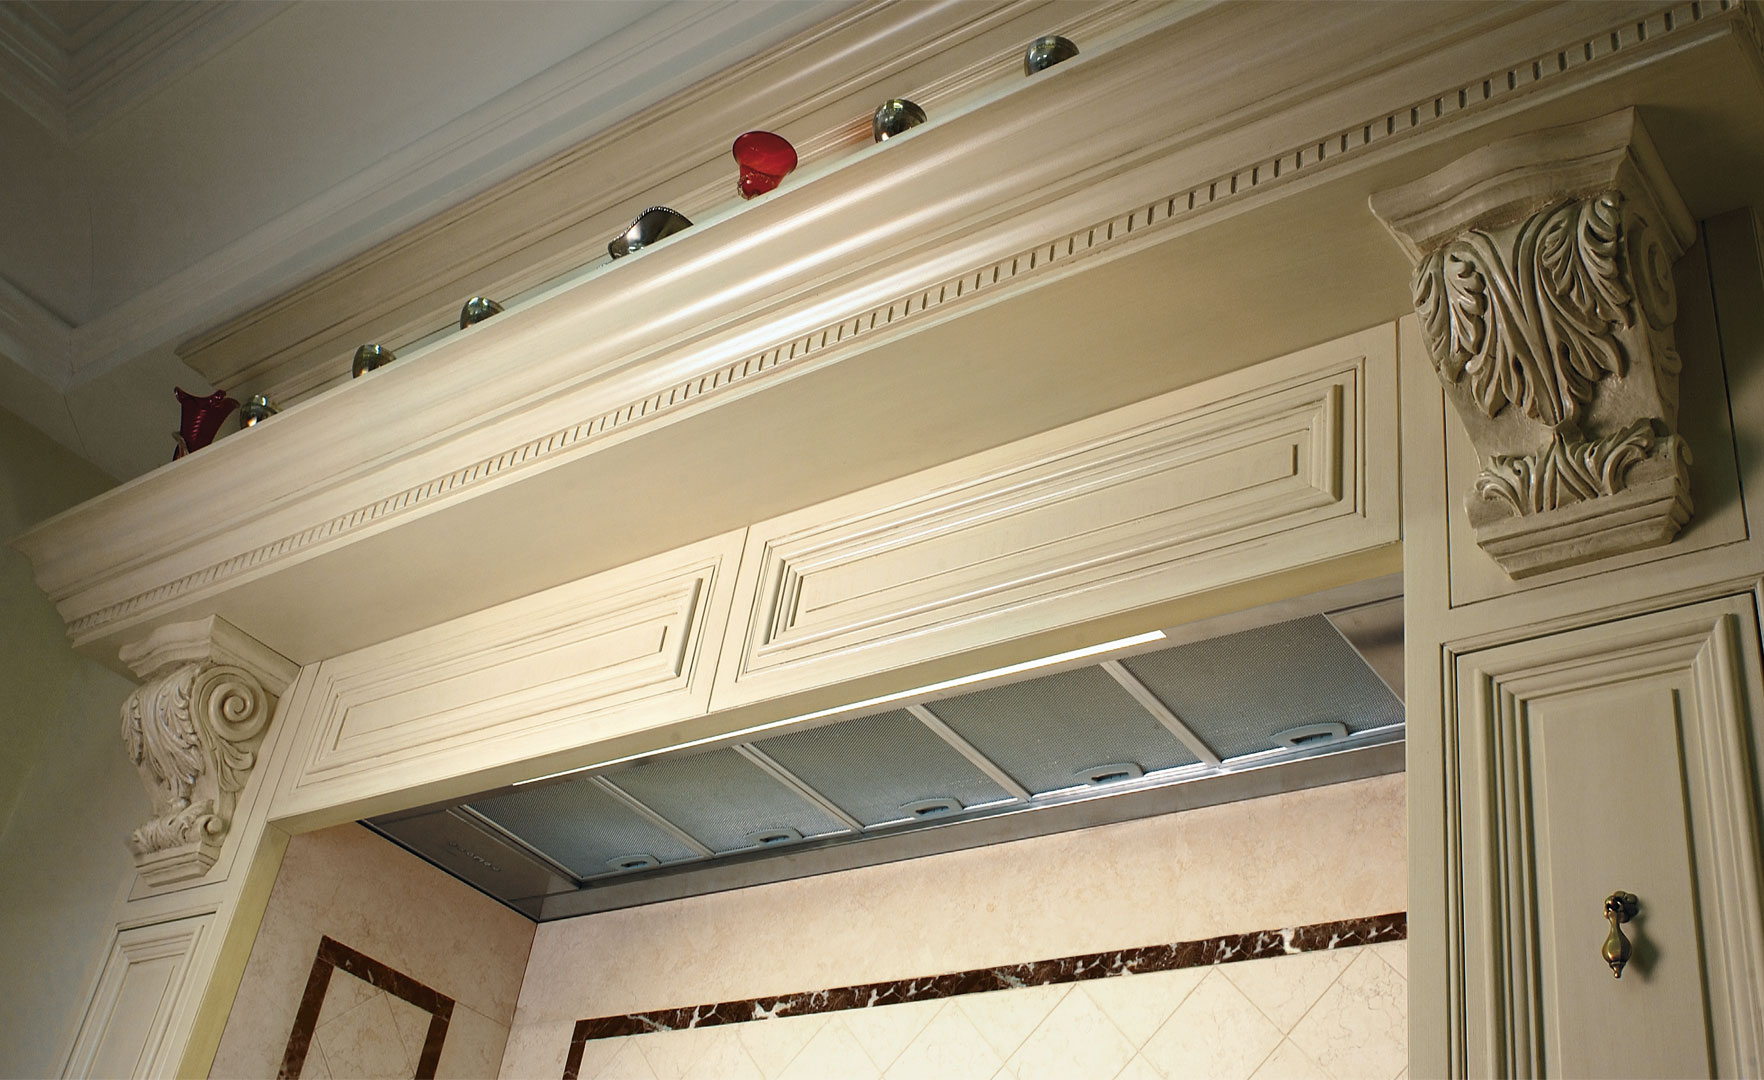 Fine hand carved details to match coverings